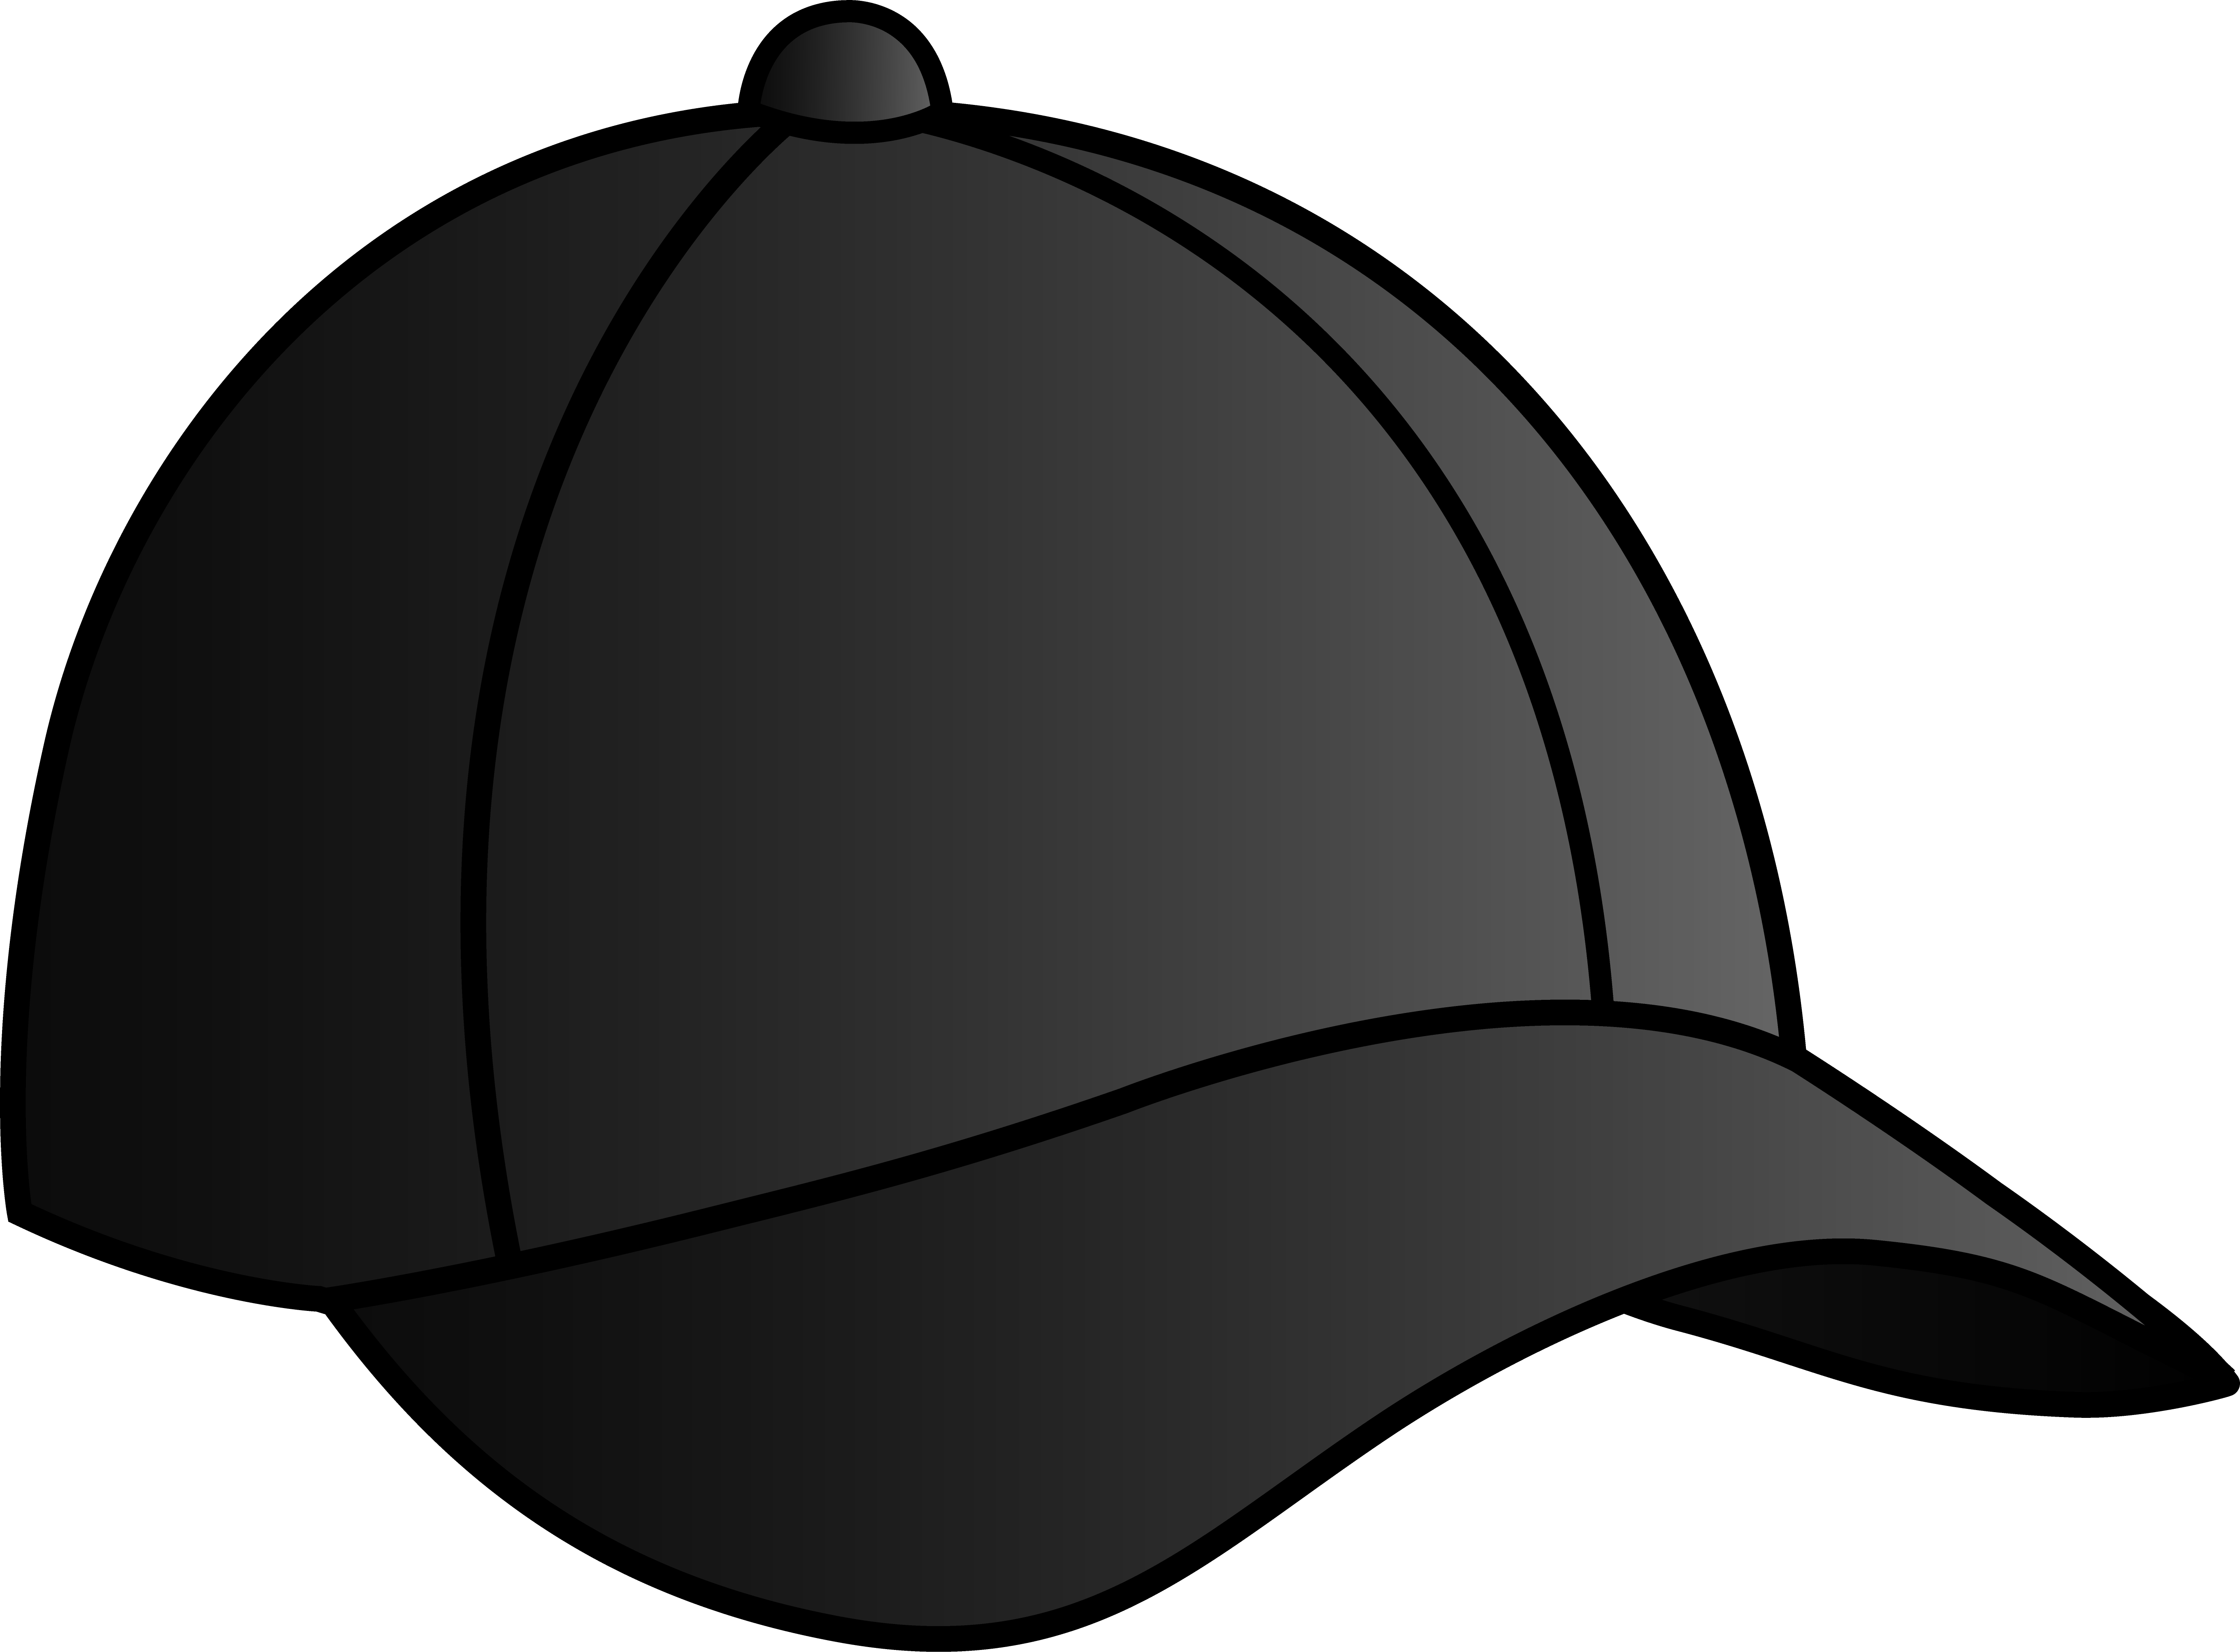 Cartoon baseball hat clipart png black and white Free Baseball Cap Pictures, Download Free Clip Art, Free Clip Art on ... png black and white